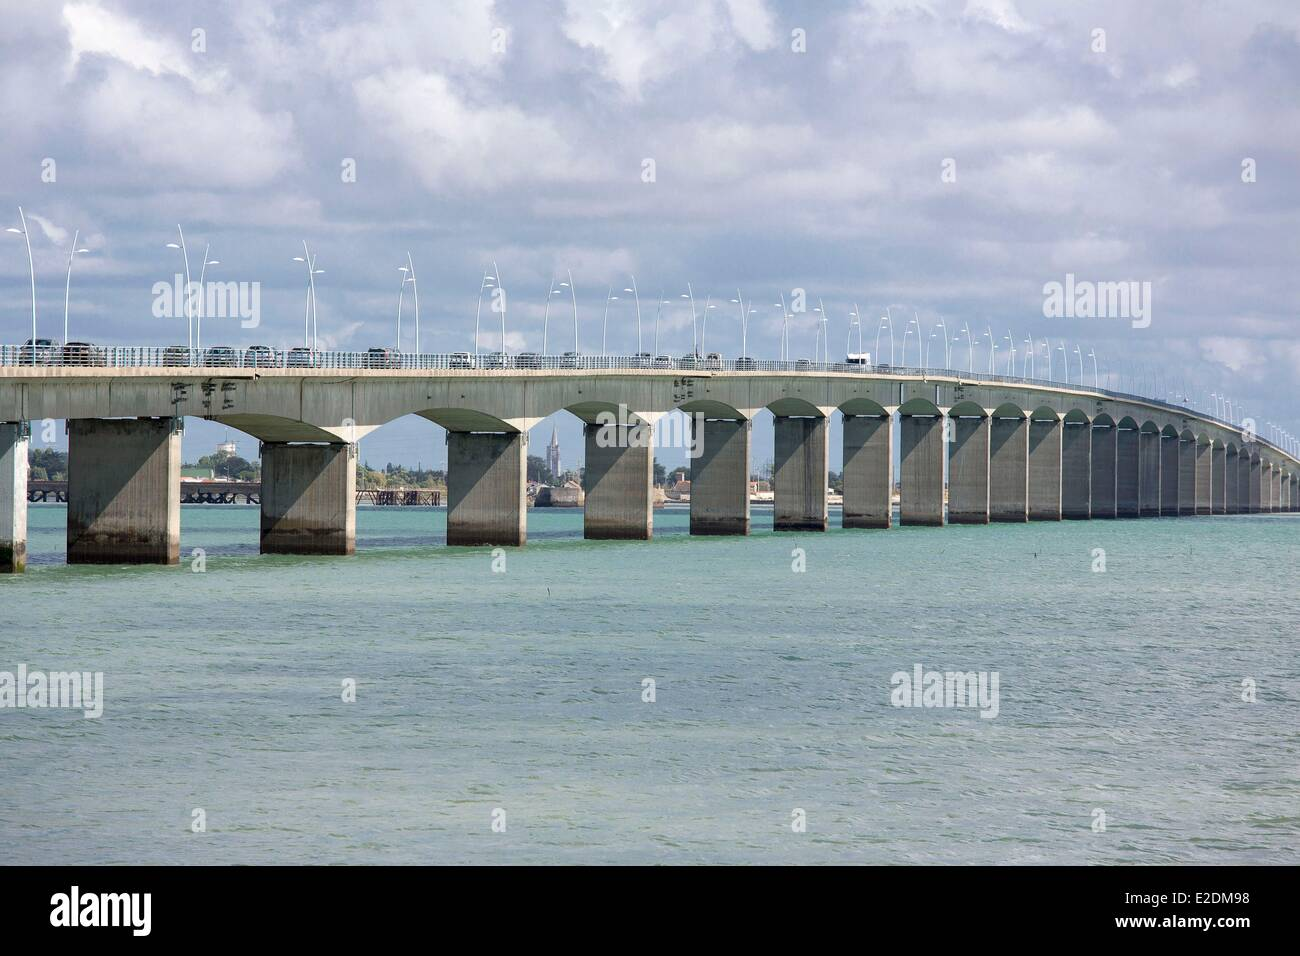 oleron bridge photos oleron bridge images alamy. Black Bedroom Furniture Sets. Home Design Ideas